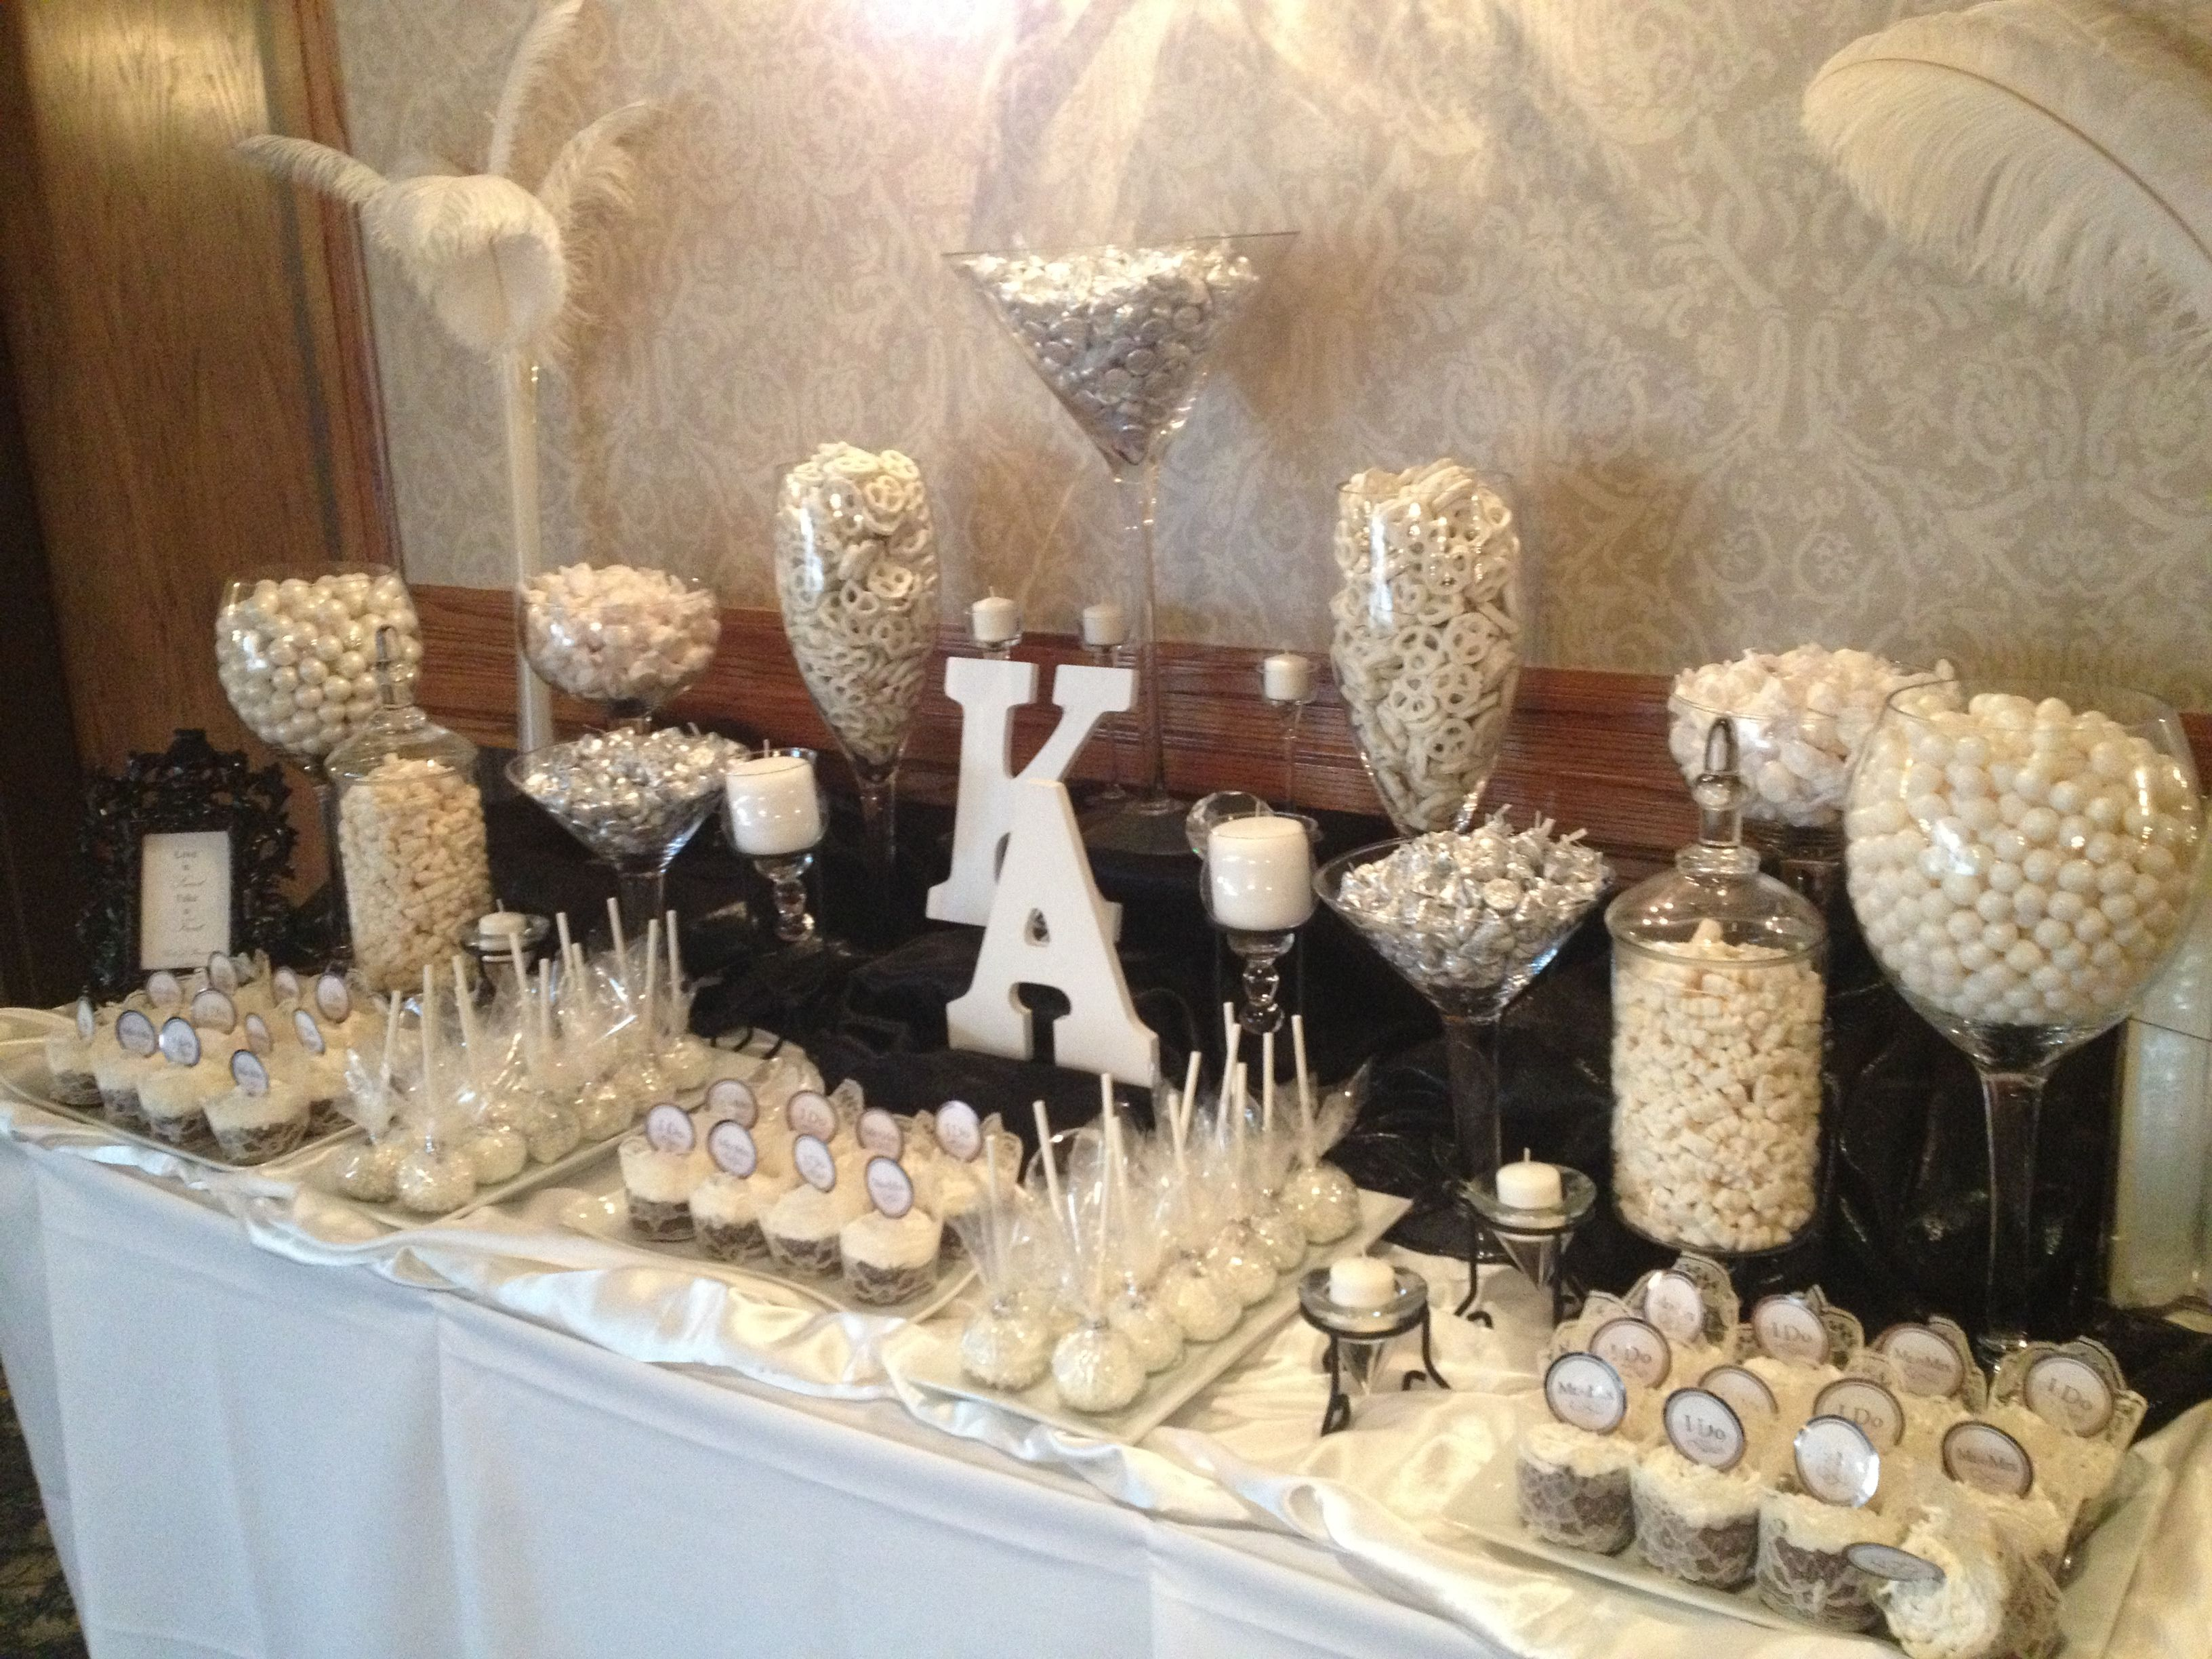 juan camilo wedding candy bar White Black Wedding Candy Buffet by Sweet Tooth Candy Buffets facebook com SweetToothBuffets